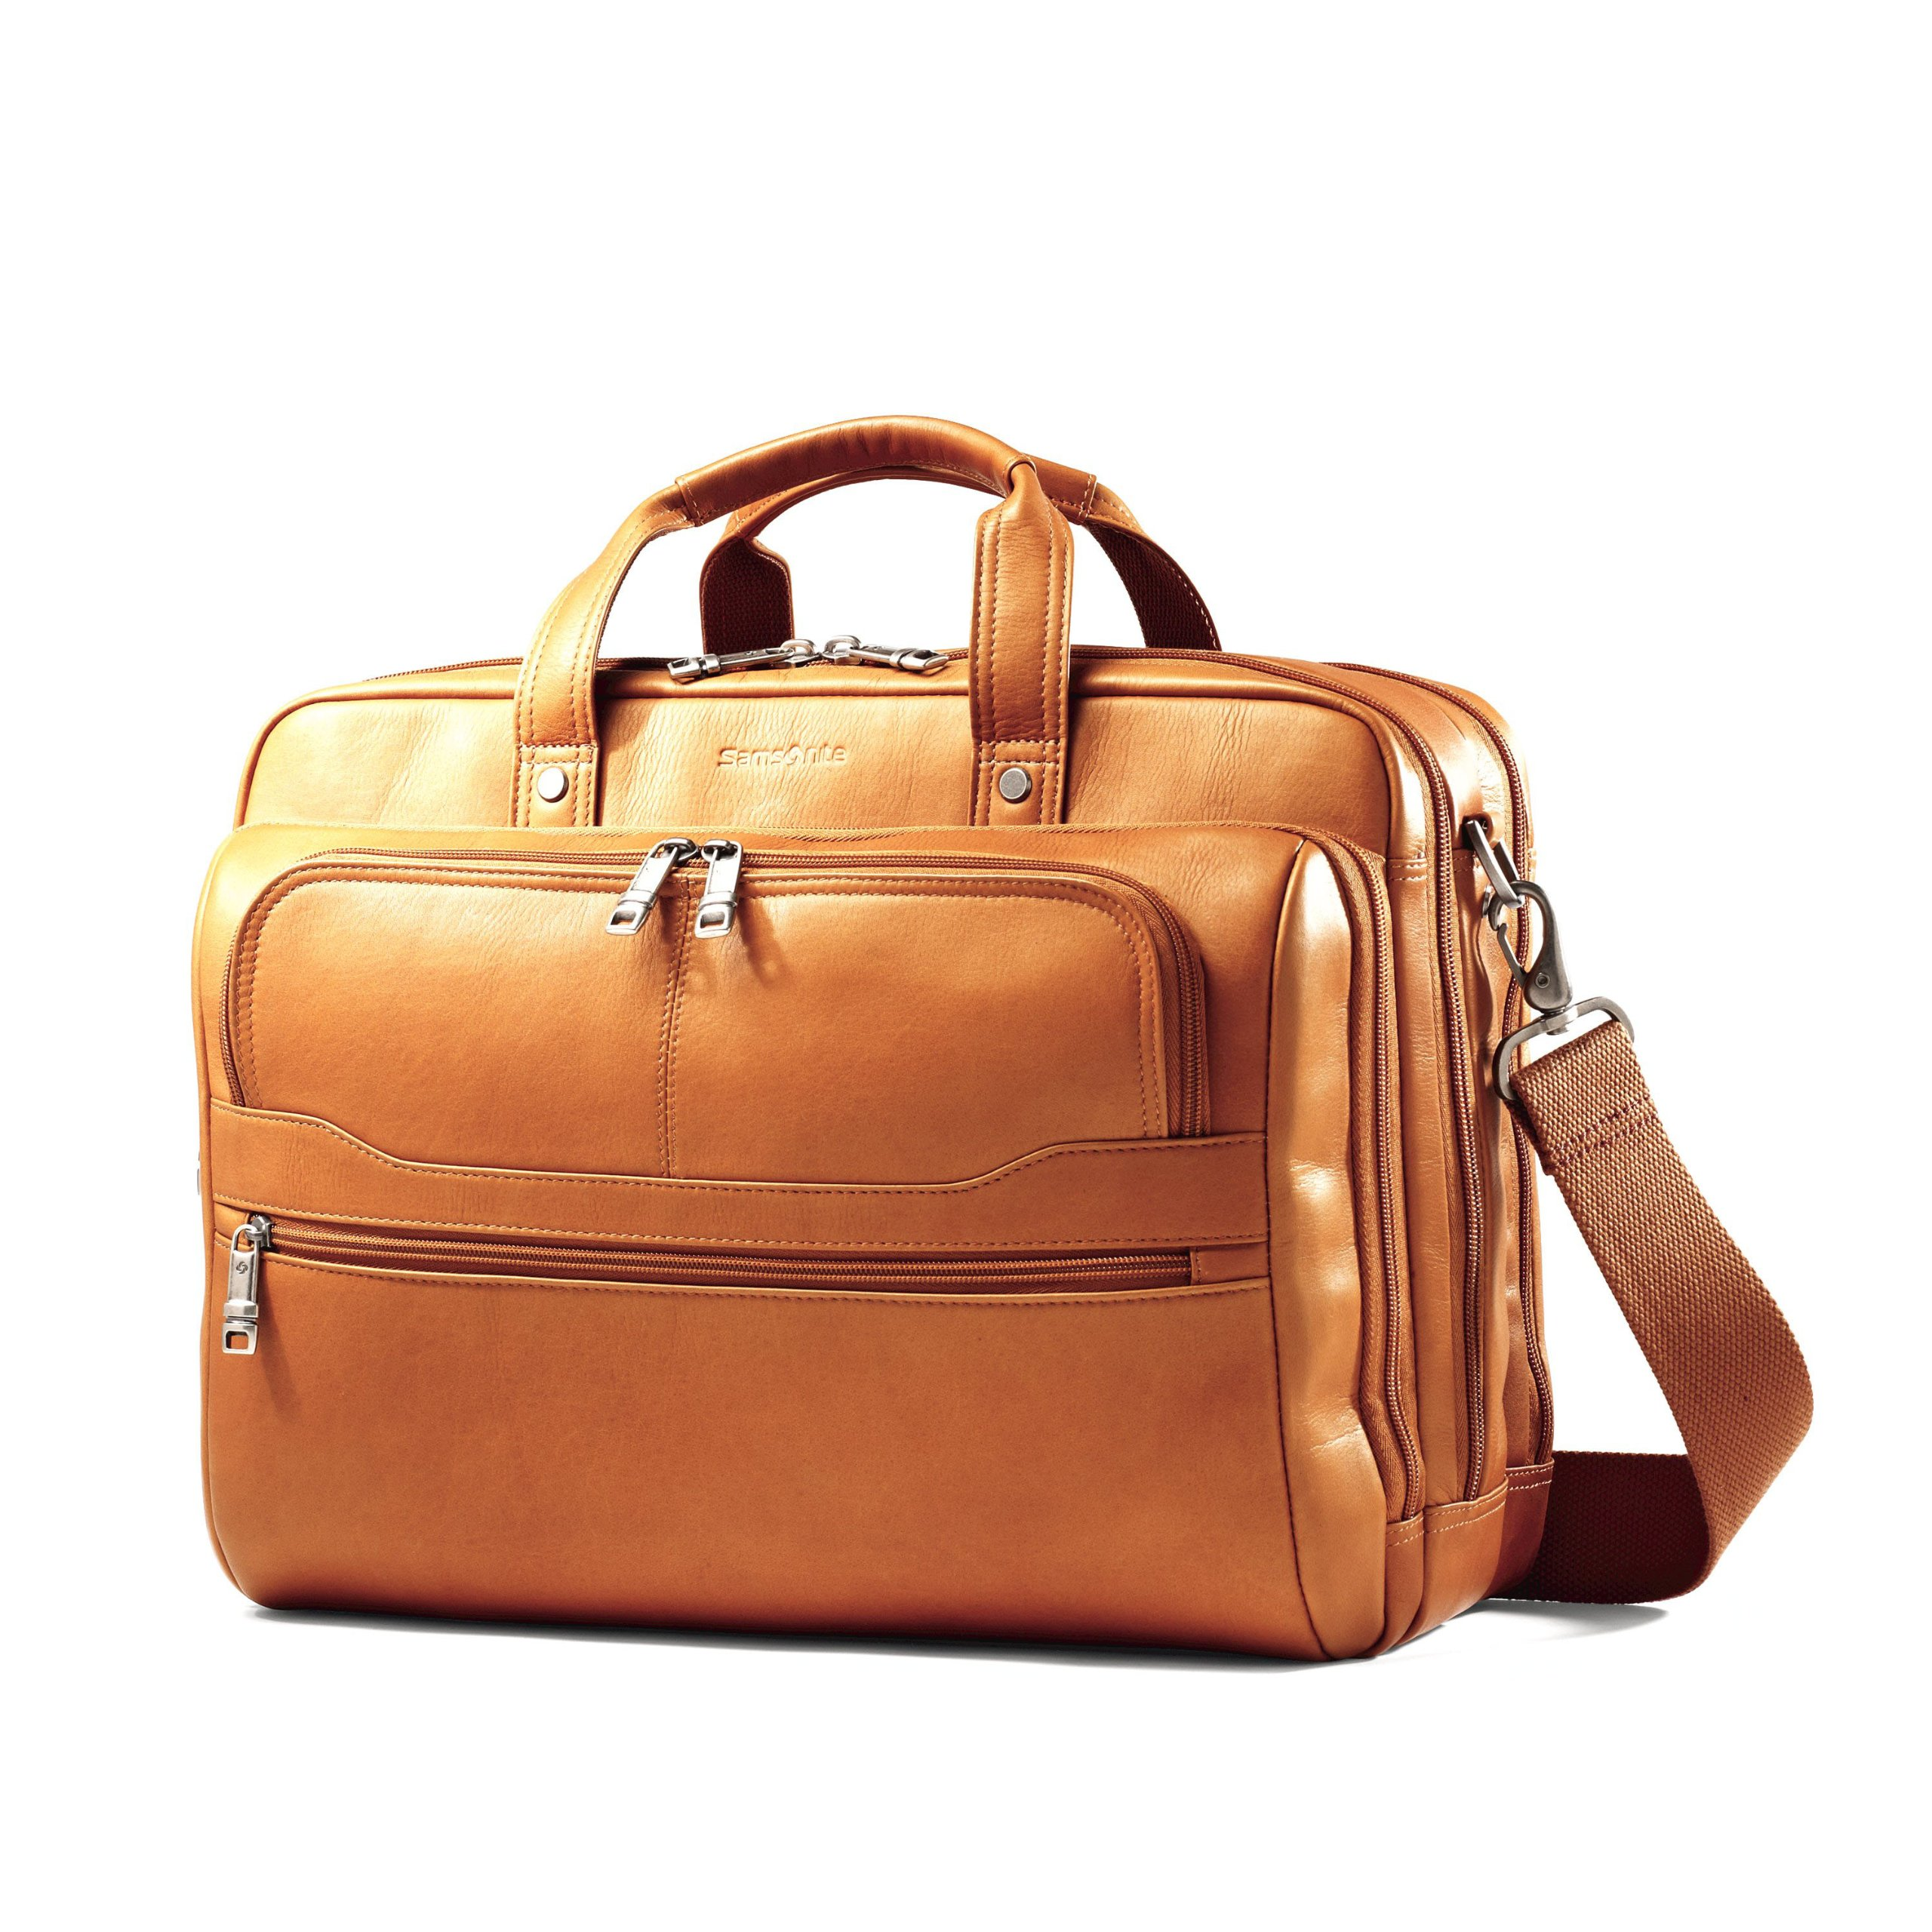 Samsonite Vachetta Leather 2 Pocket Business Case Tan by Samsonite